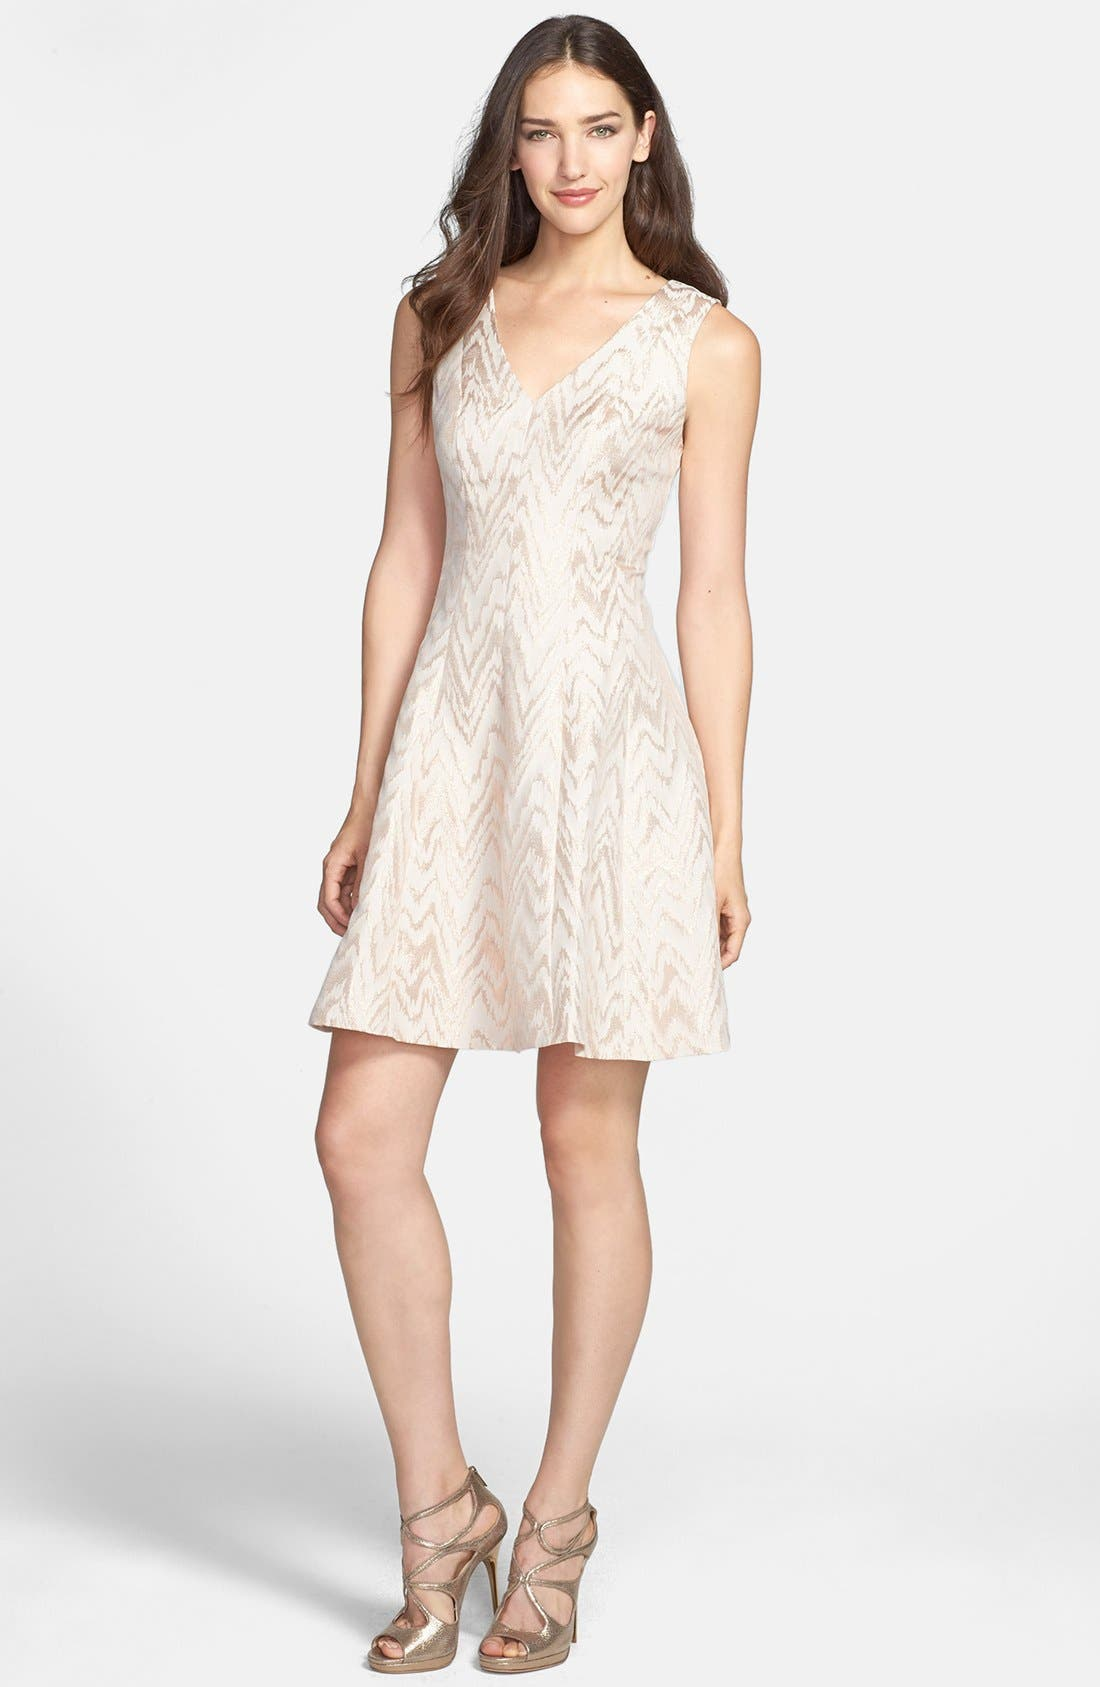 Alternate Image 1 Selected - Vince Camuto Metallic Jacquard Fit & Flare Dress